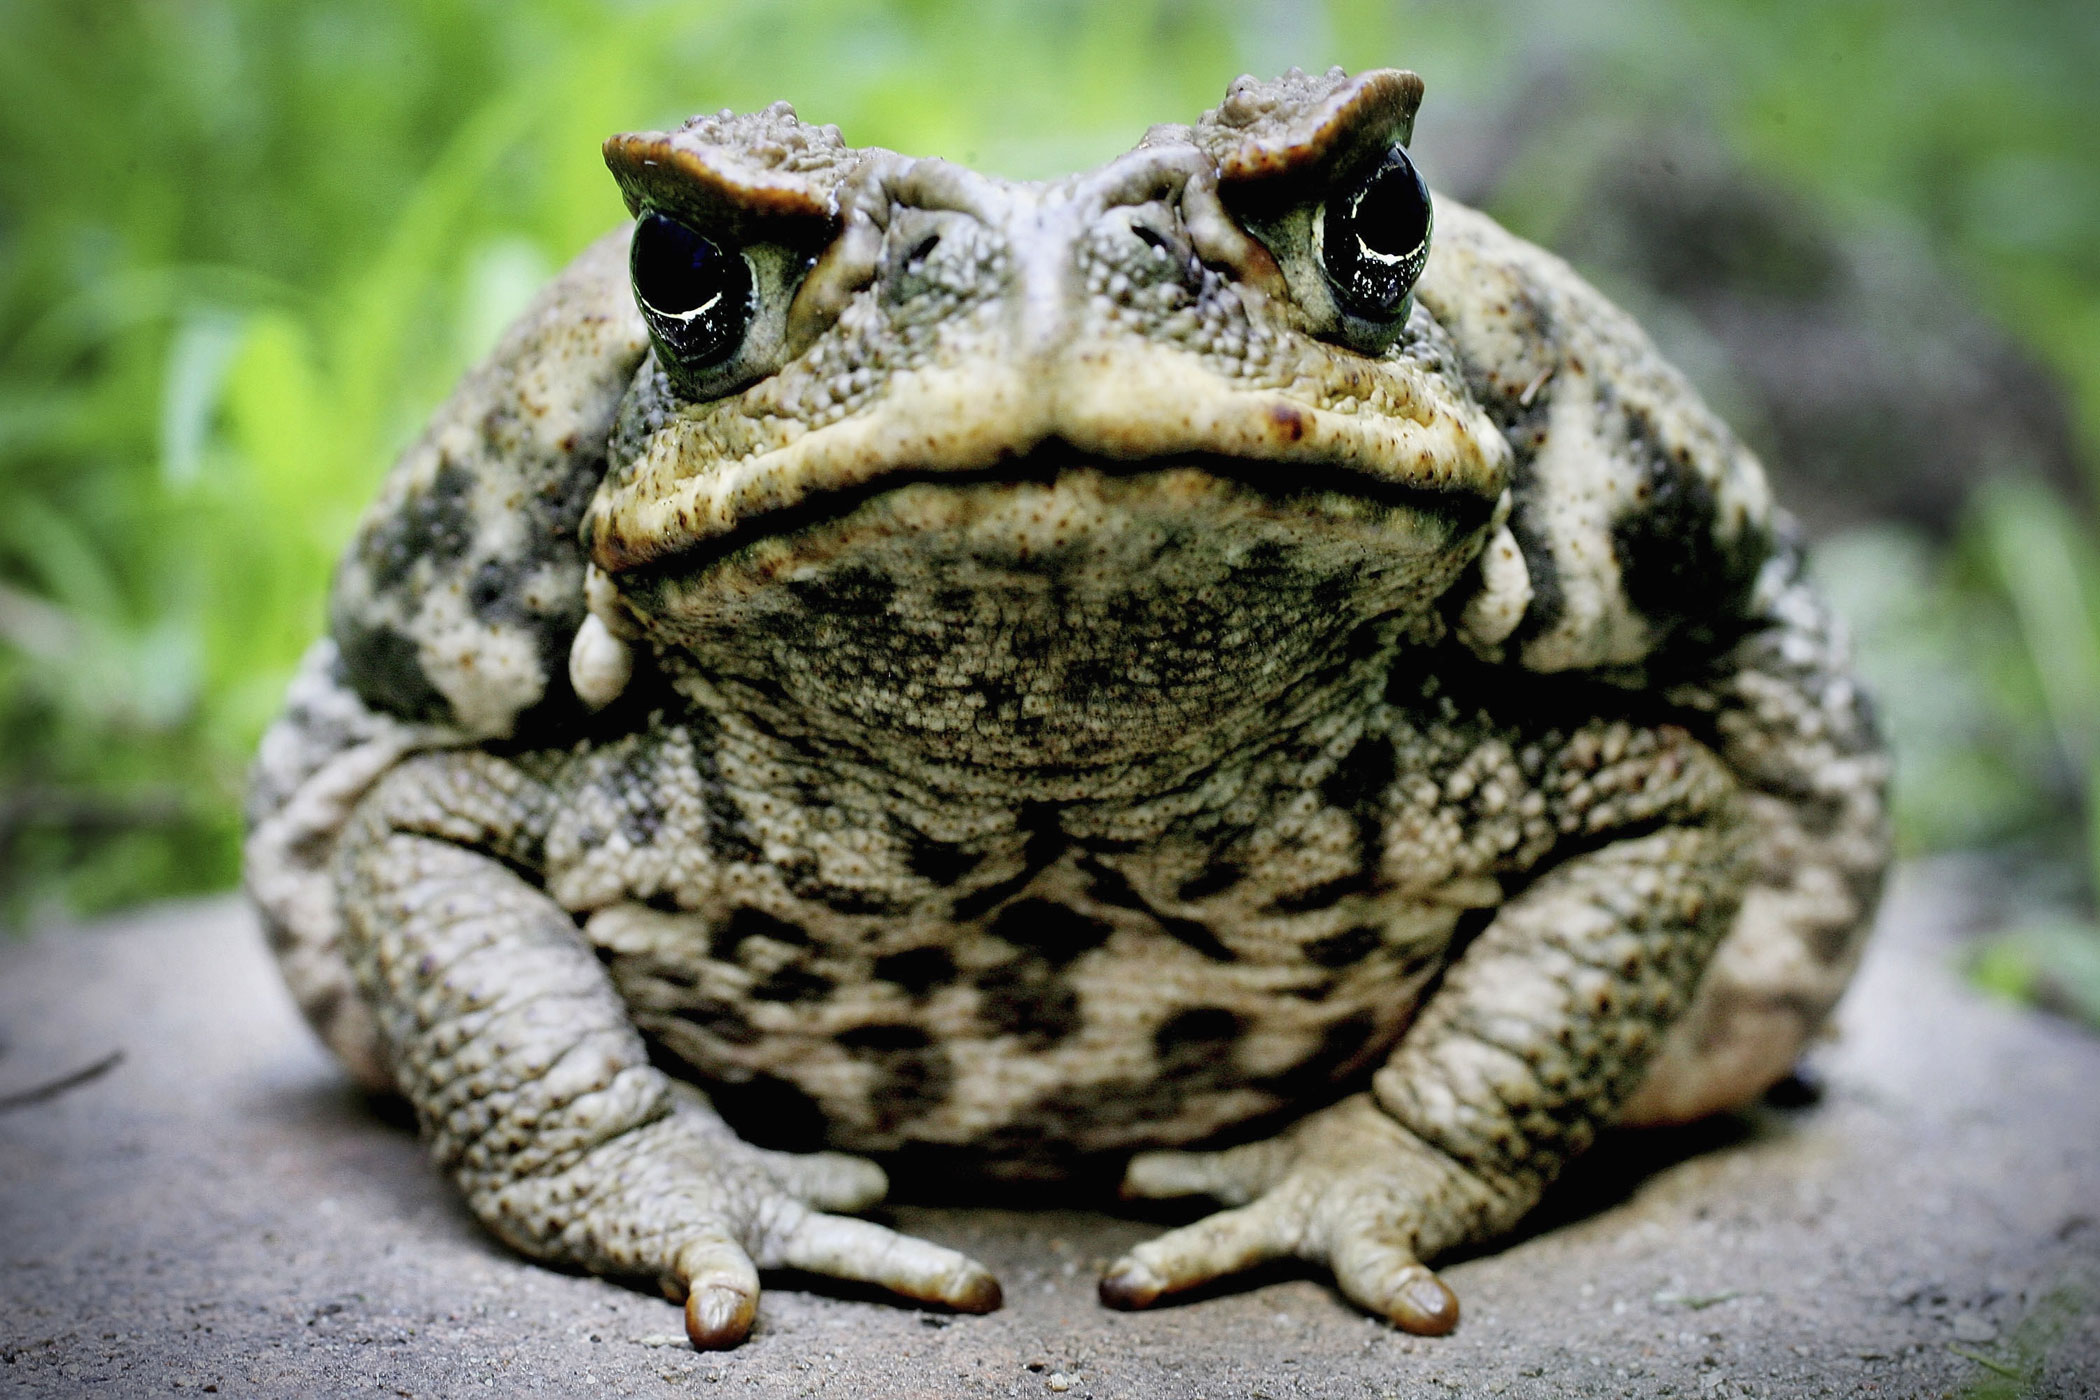 Originally introduced to control pests, the cane toad has become a pest of its own. Native to Central America, the toads were brought to Australia in 1935 in an attempt to control the cane beetle population in sugar plantations. Ultimately there was no evidence they killed a single beetle. Instead, the toads took over.